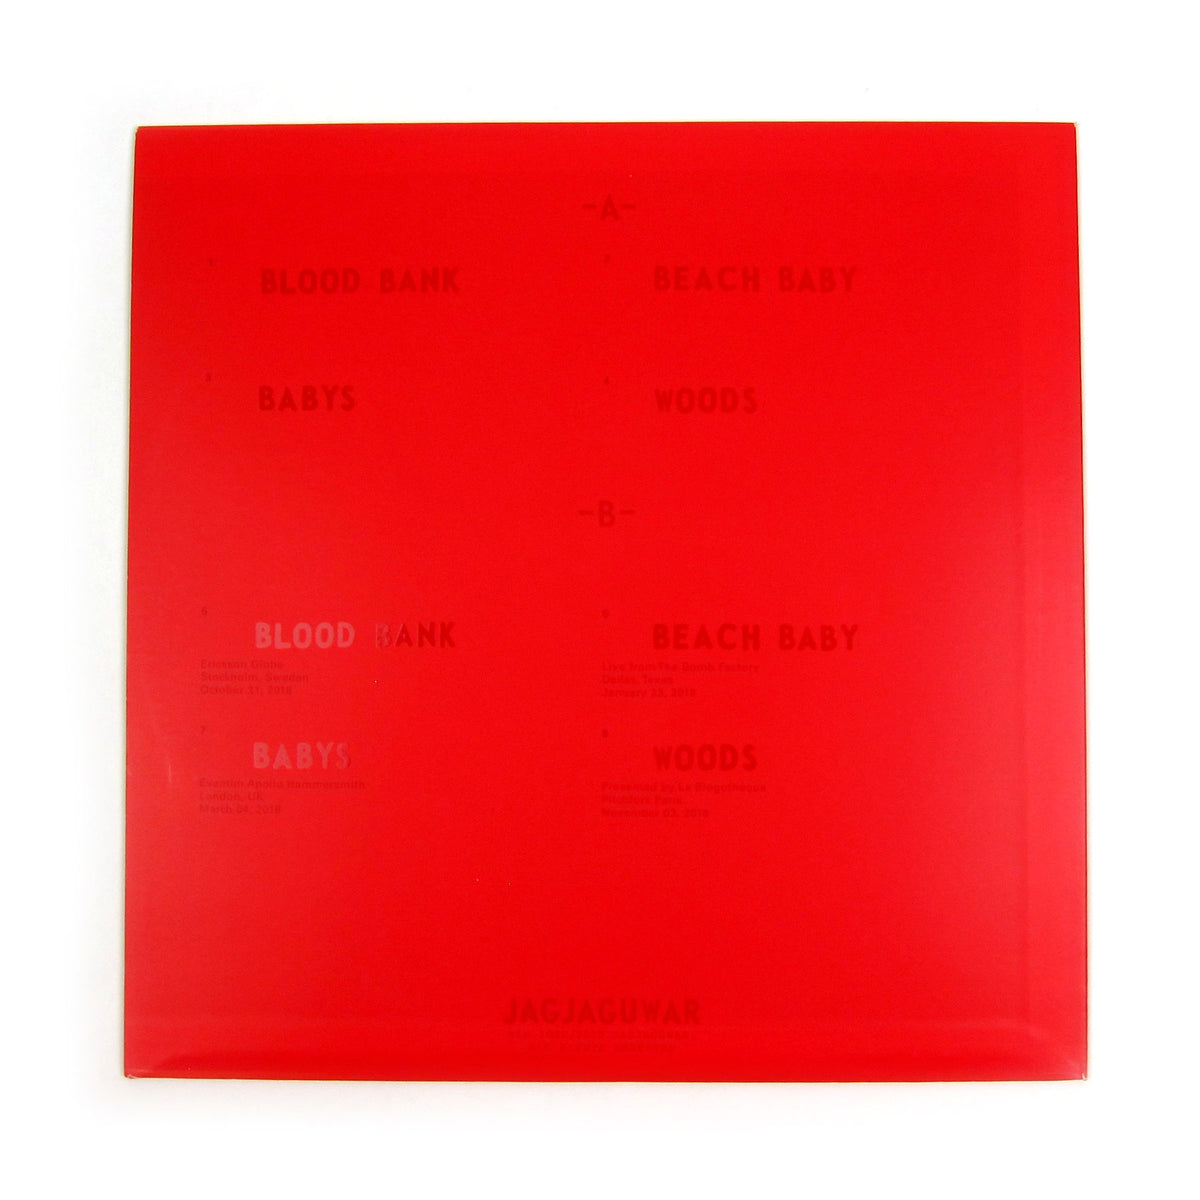 Bon Iver: Blood Bank - 10th Anniversary Edition (Colored Vinyl) Vinyl LP